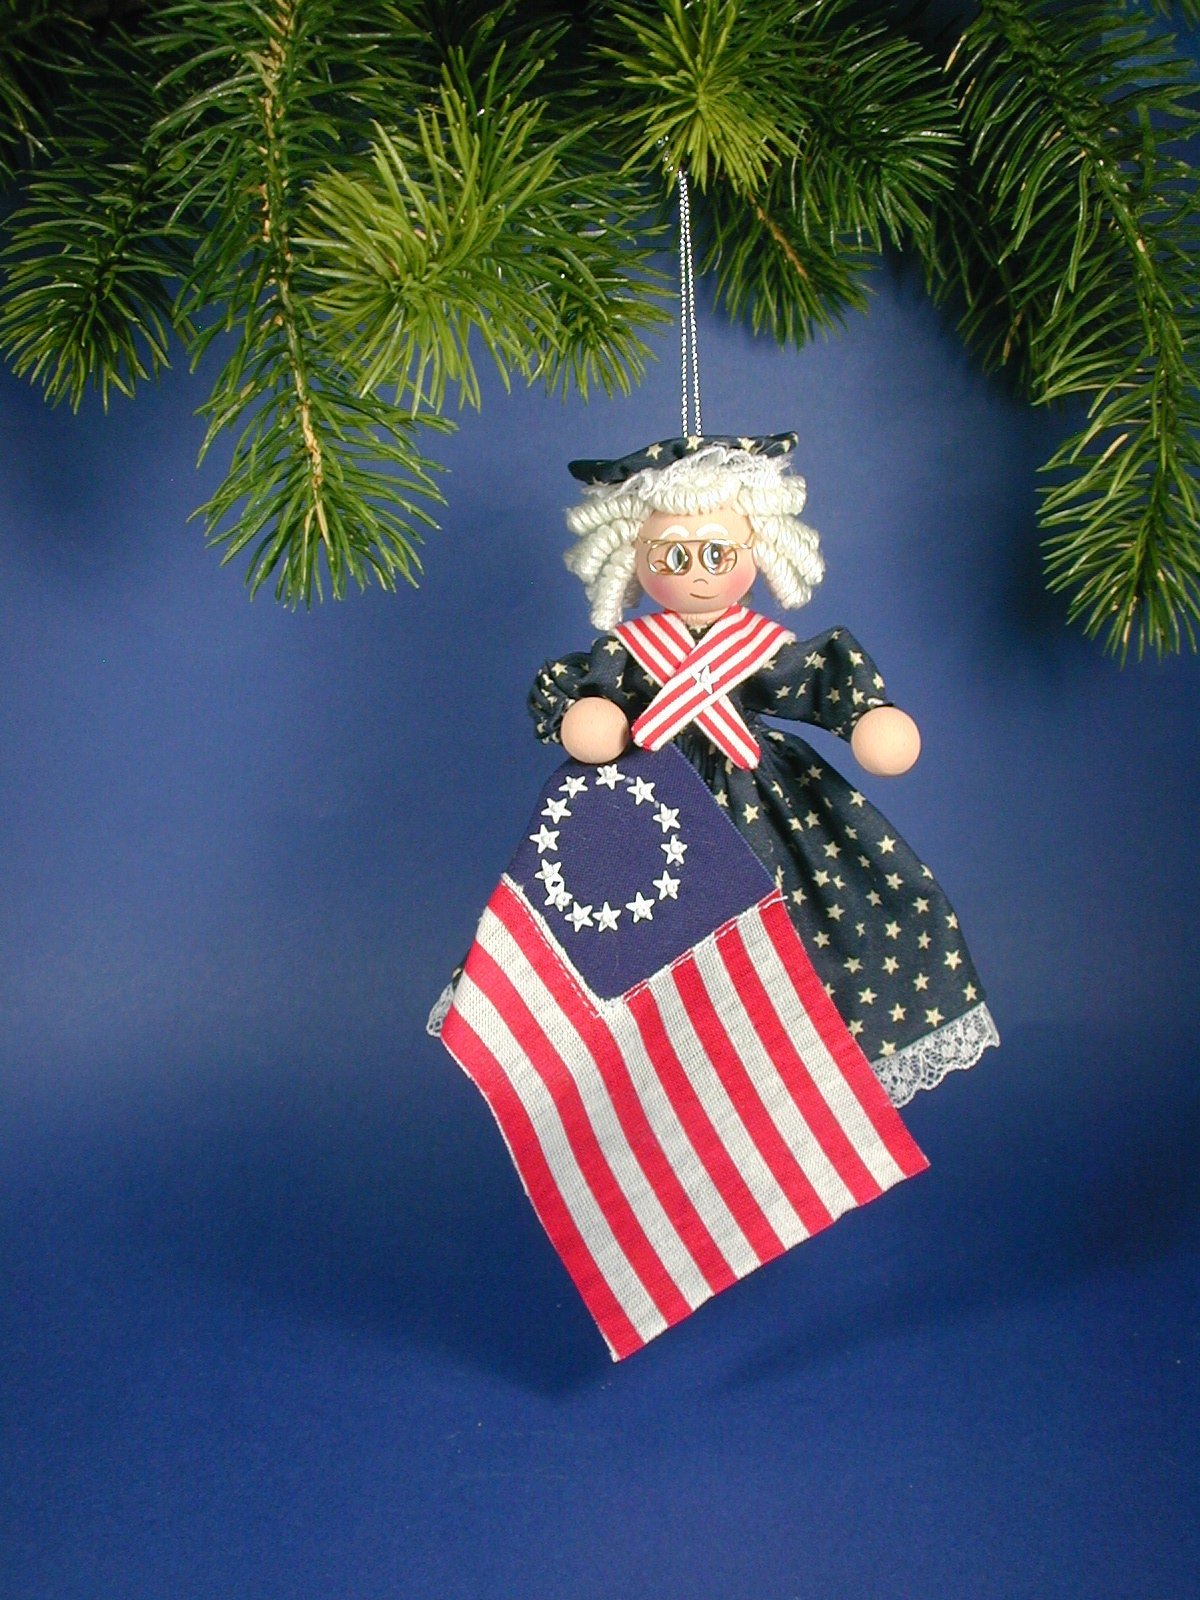 Betsy Ross Clothespin Ornament: Betsy Ross Flag Maker ClothespinOrnament; Americana Betsy Clothespin Ornament